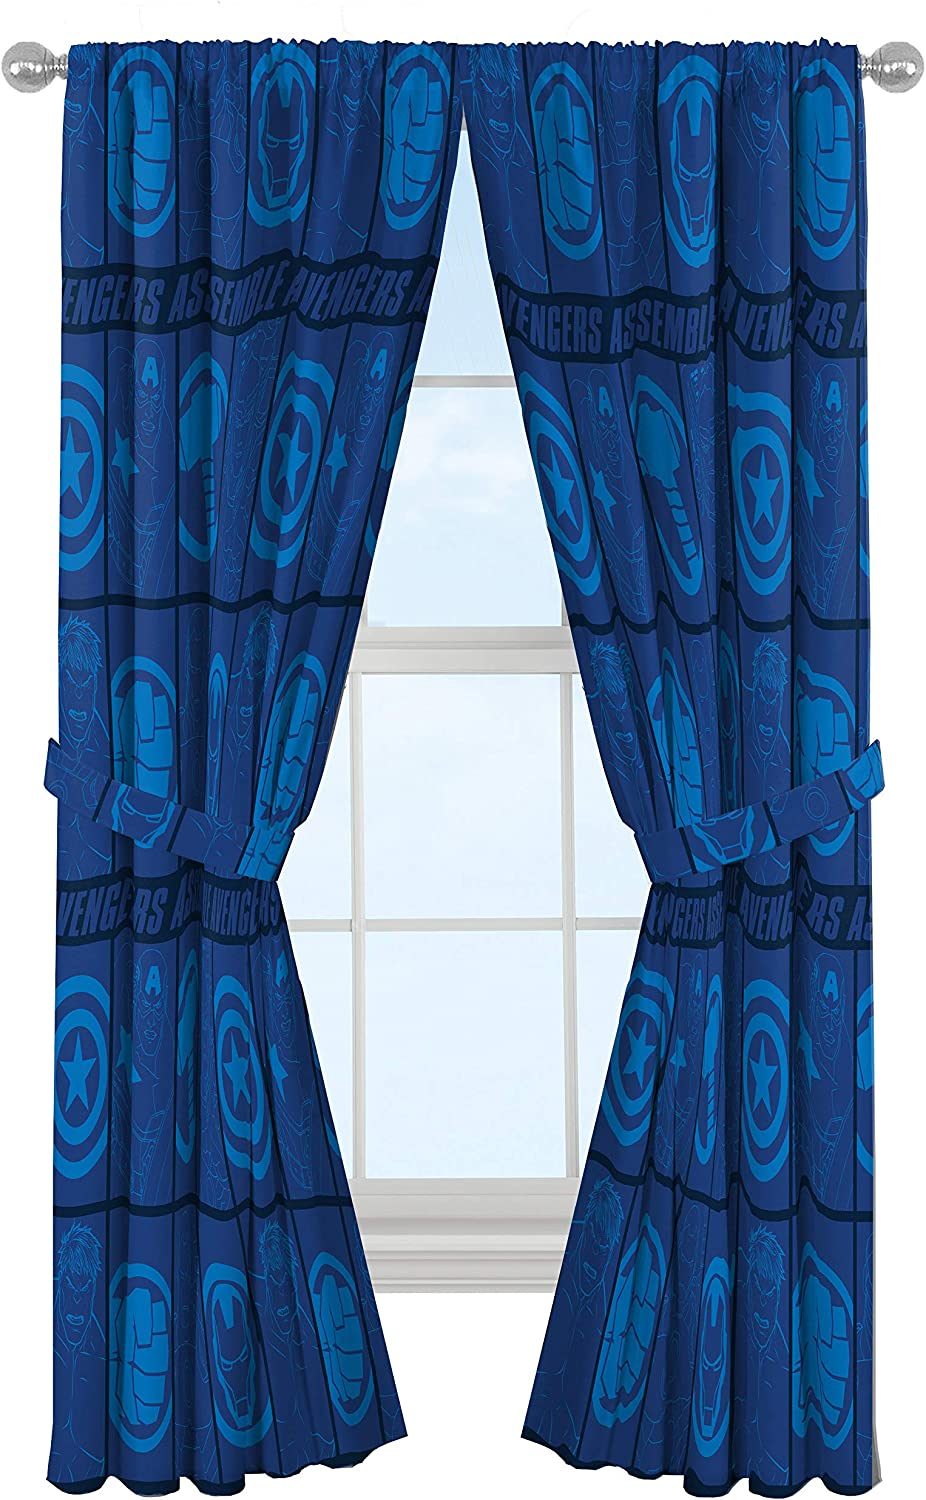 "Marvel Avengers Blue Icons 84"" Inch Drapes - Beautiful Room Décor & Easy Set Up, Bedding Features Captain America & Iron Man - Curtains Include 2 Tiebacks, 4 Piece Set (Official Marvel Product)"